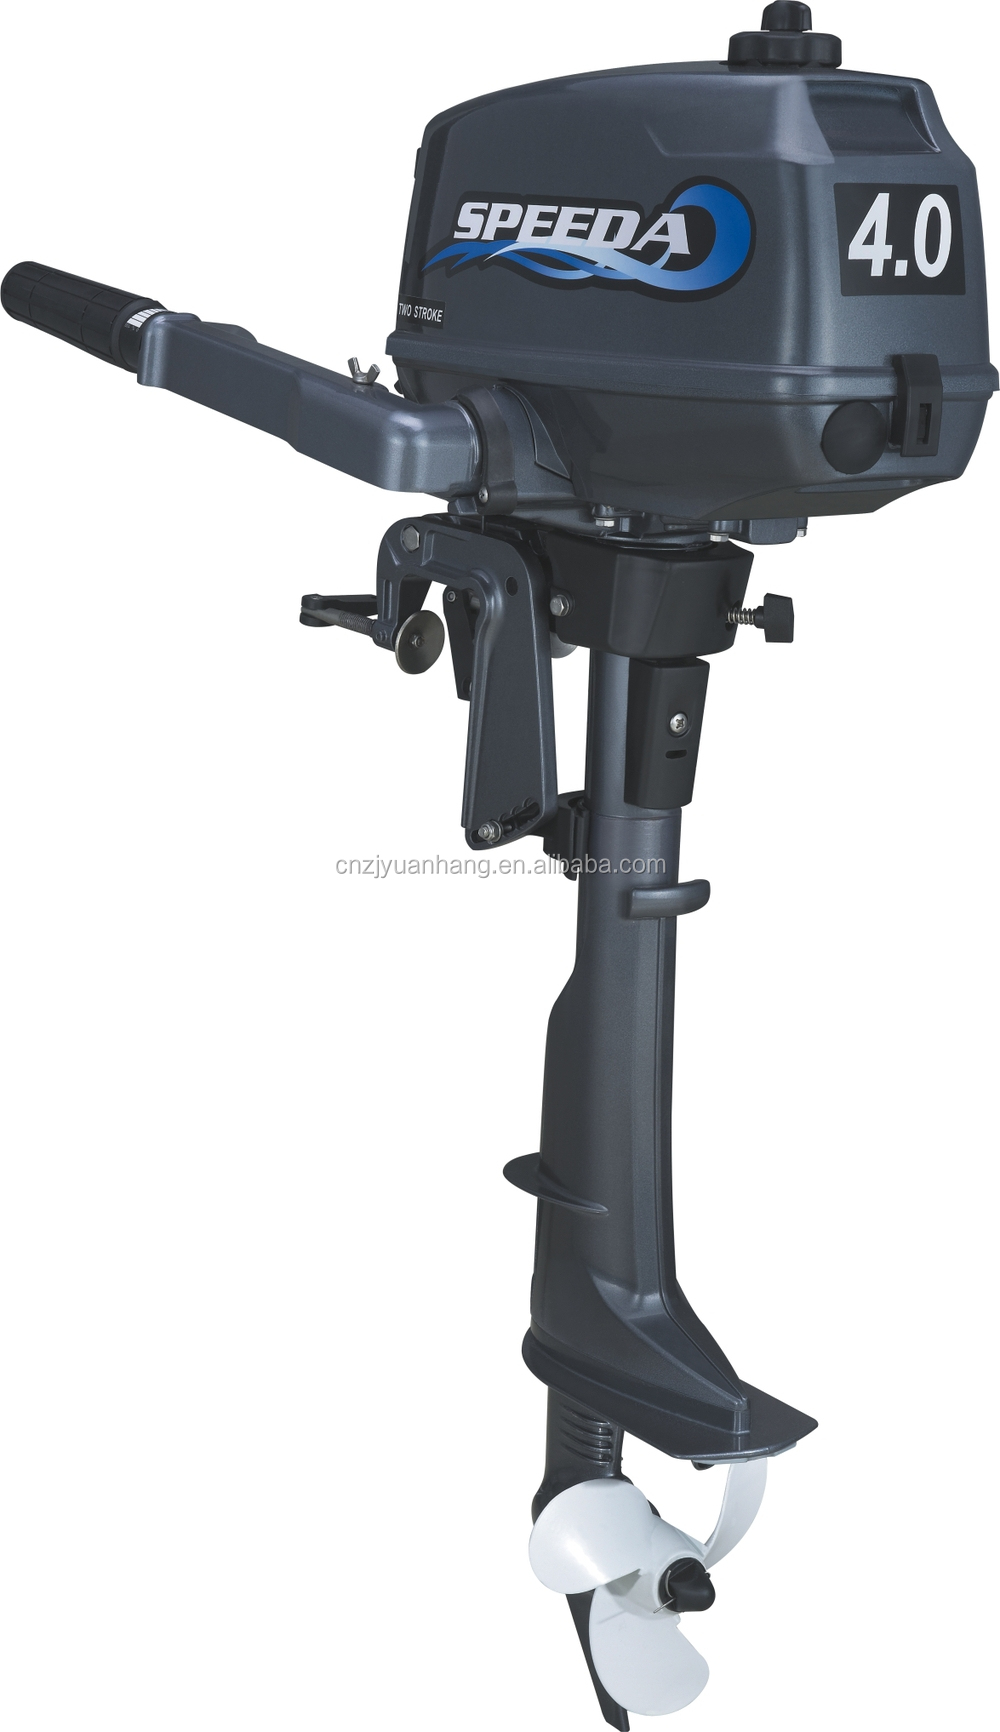 Yadao 2 Stroke Outboard Motor Boat Engine For